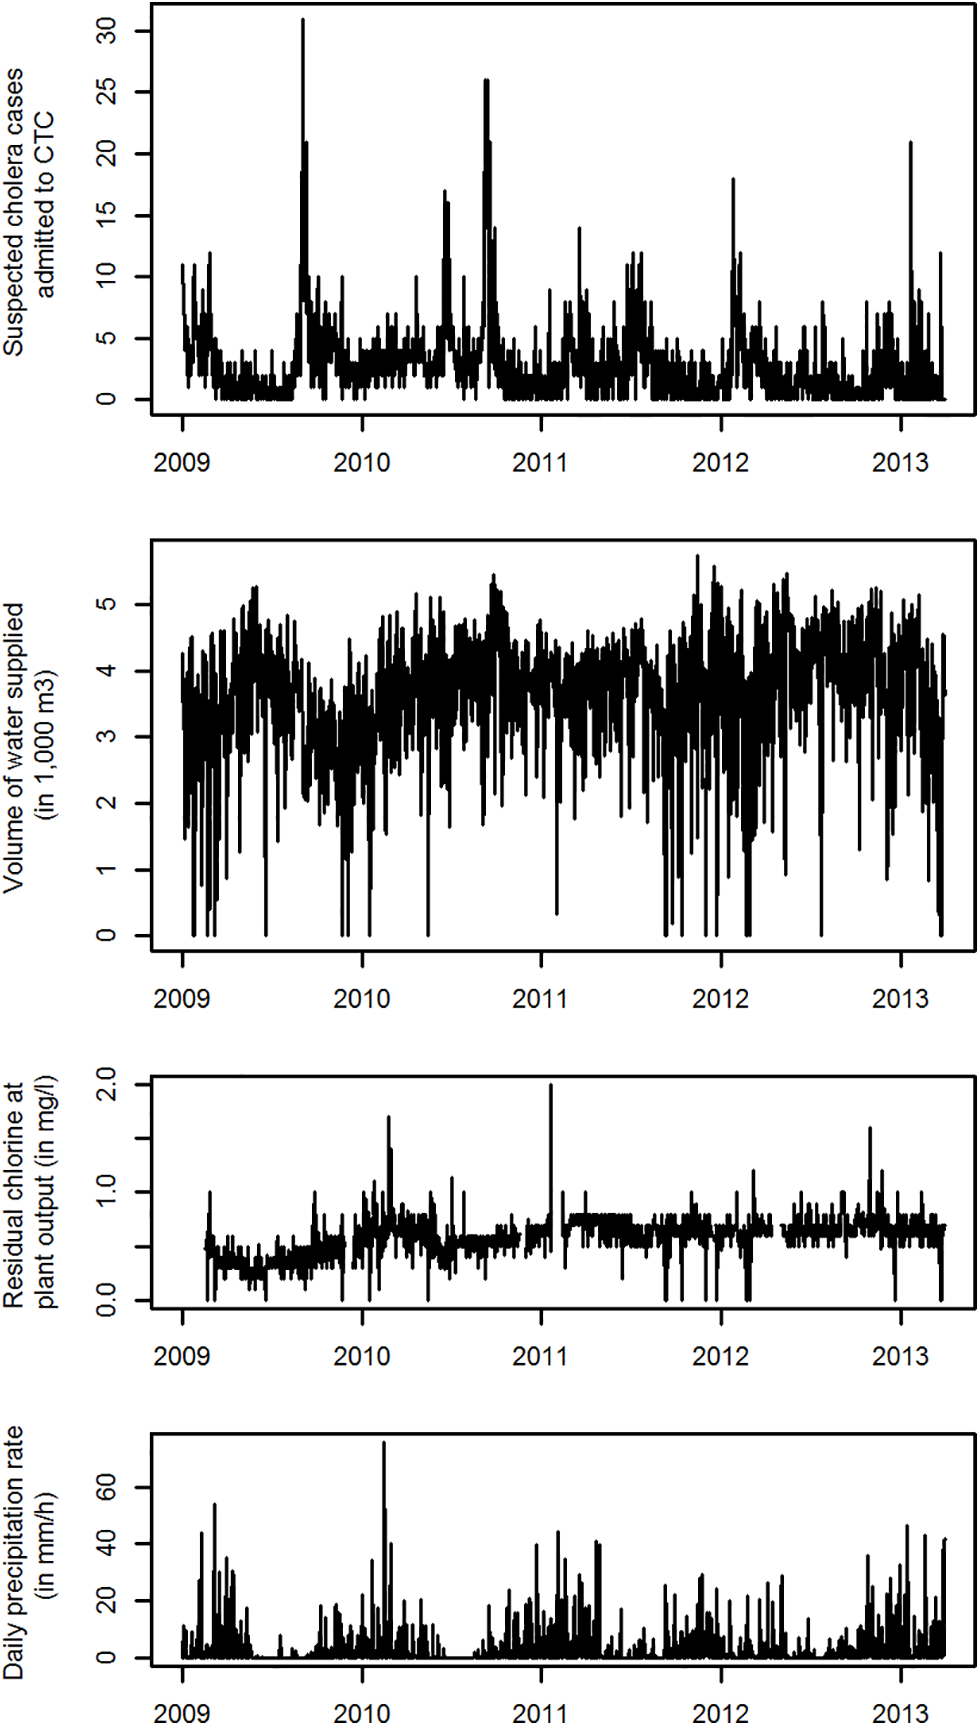 Daily time series between January 1, 2009, and April 30, 2014, for admissions at the CTC, volume of water supplied, level of residual chlorine in produced water and precipitation rate in Uvira, DRC.